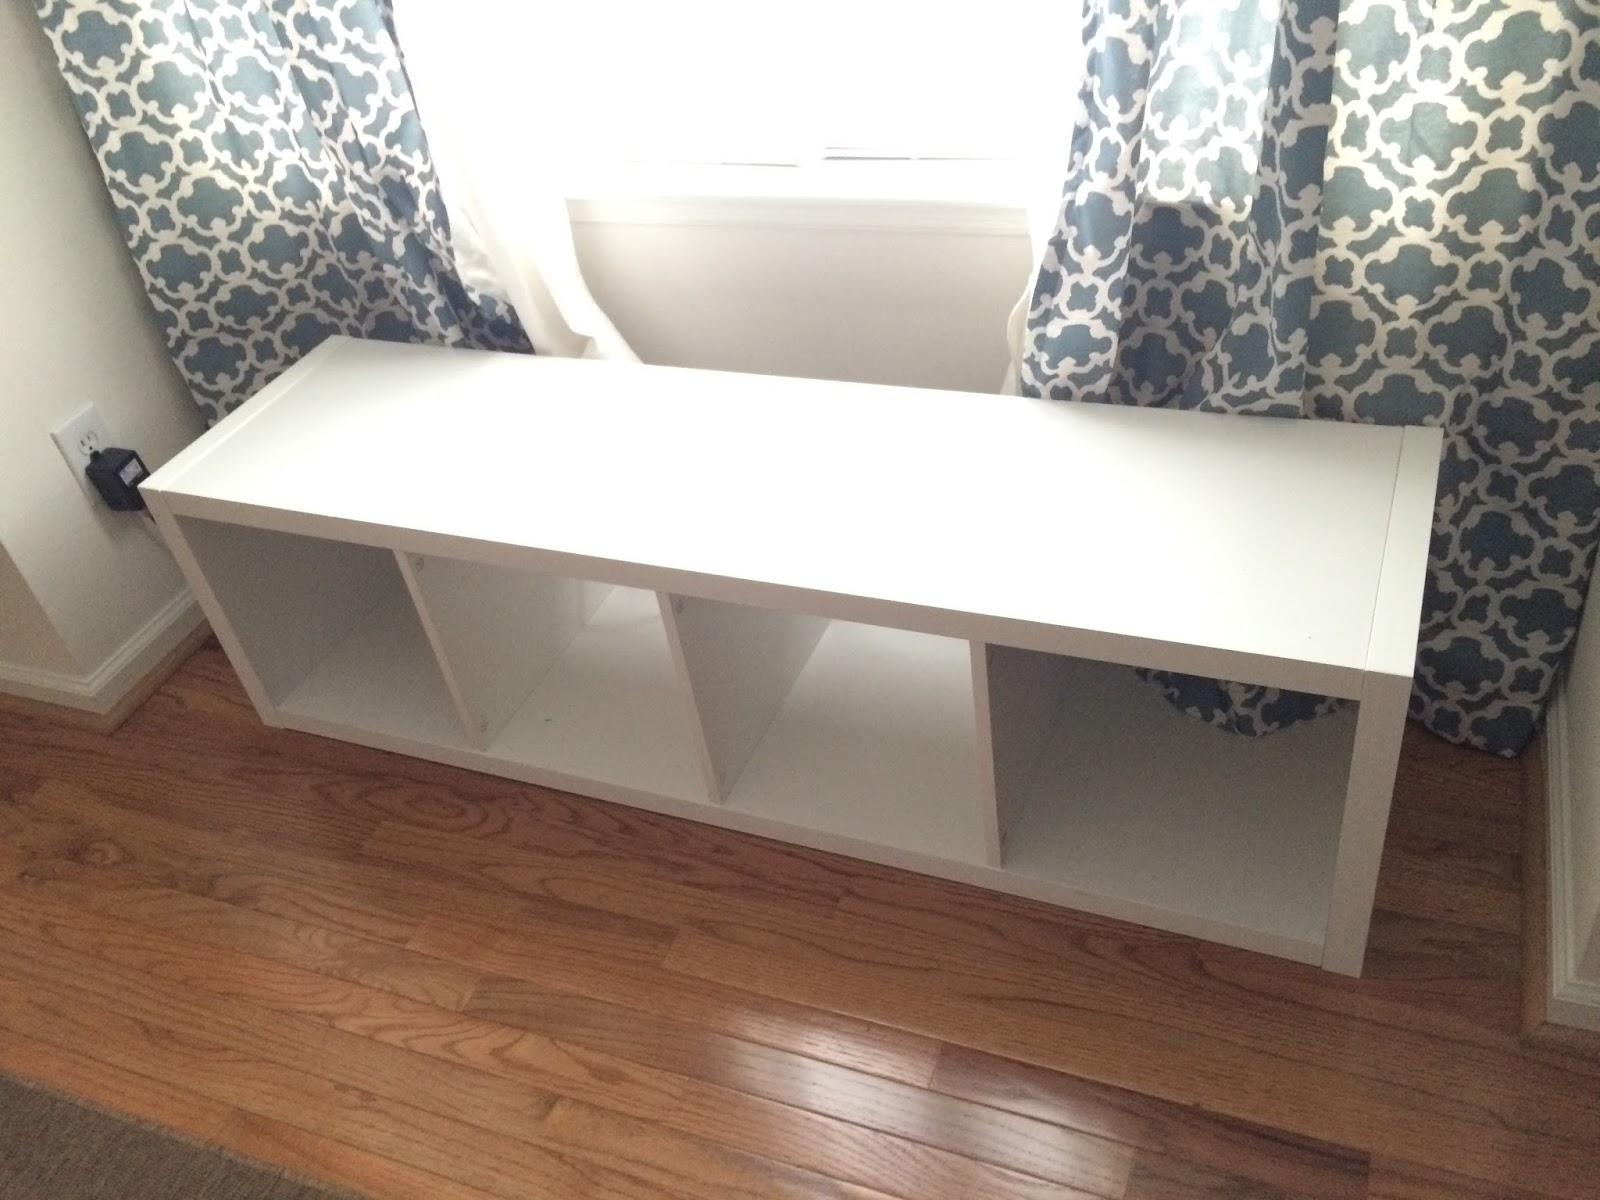 The Adorable Mess Diy Ikea Kallax Storage Bench